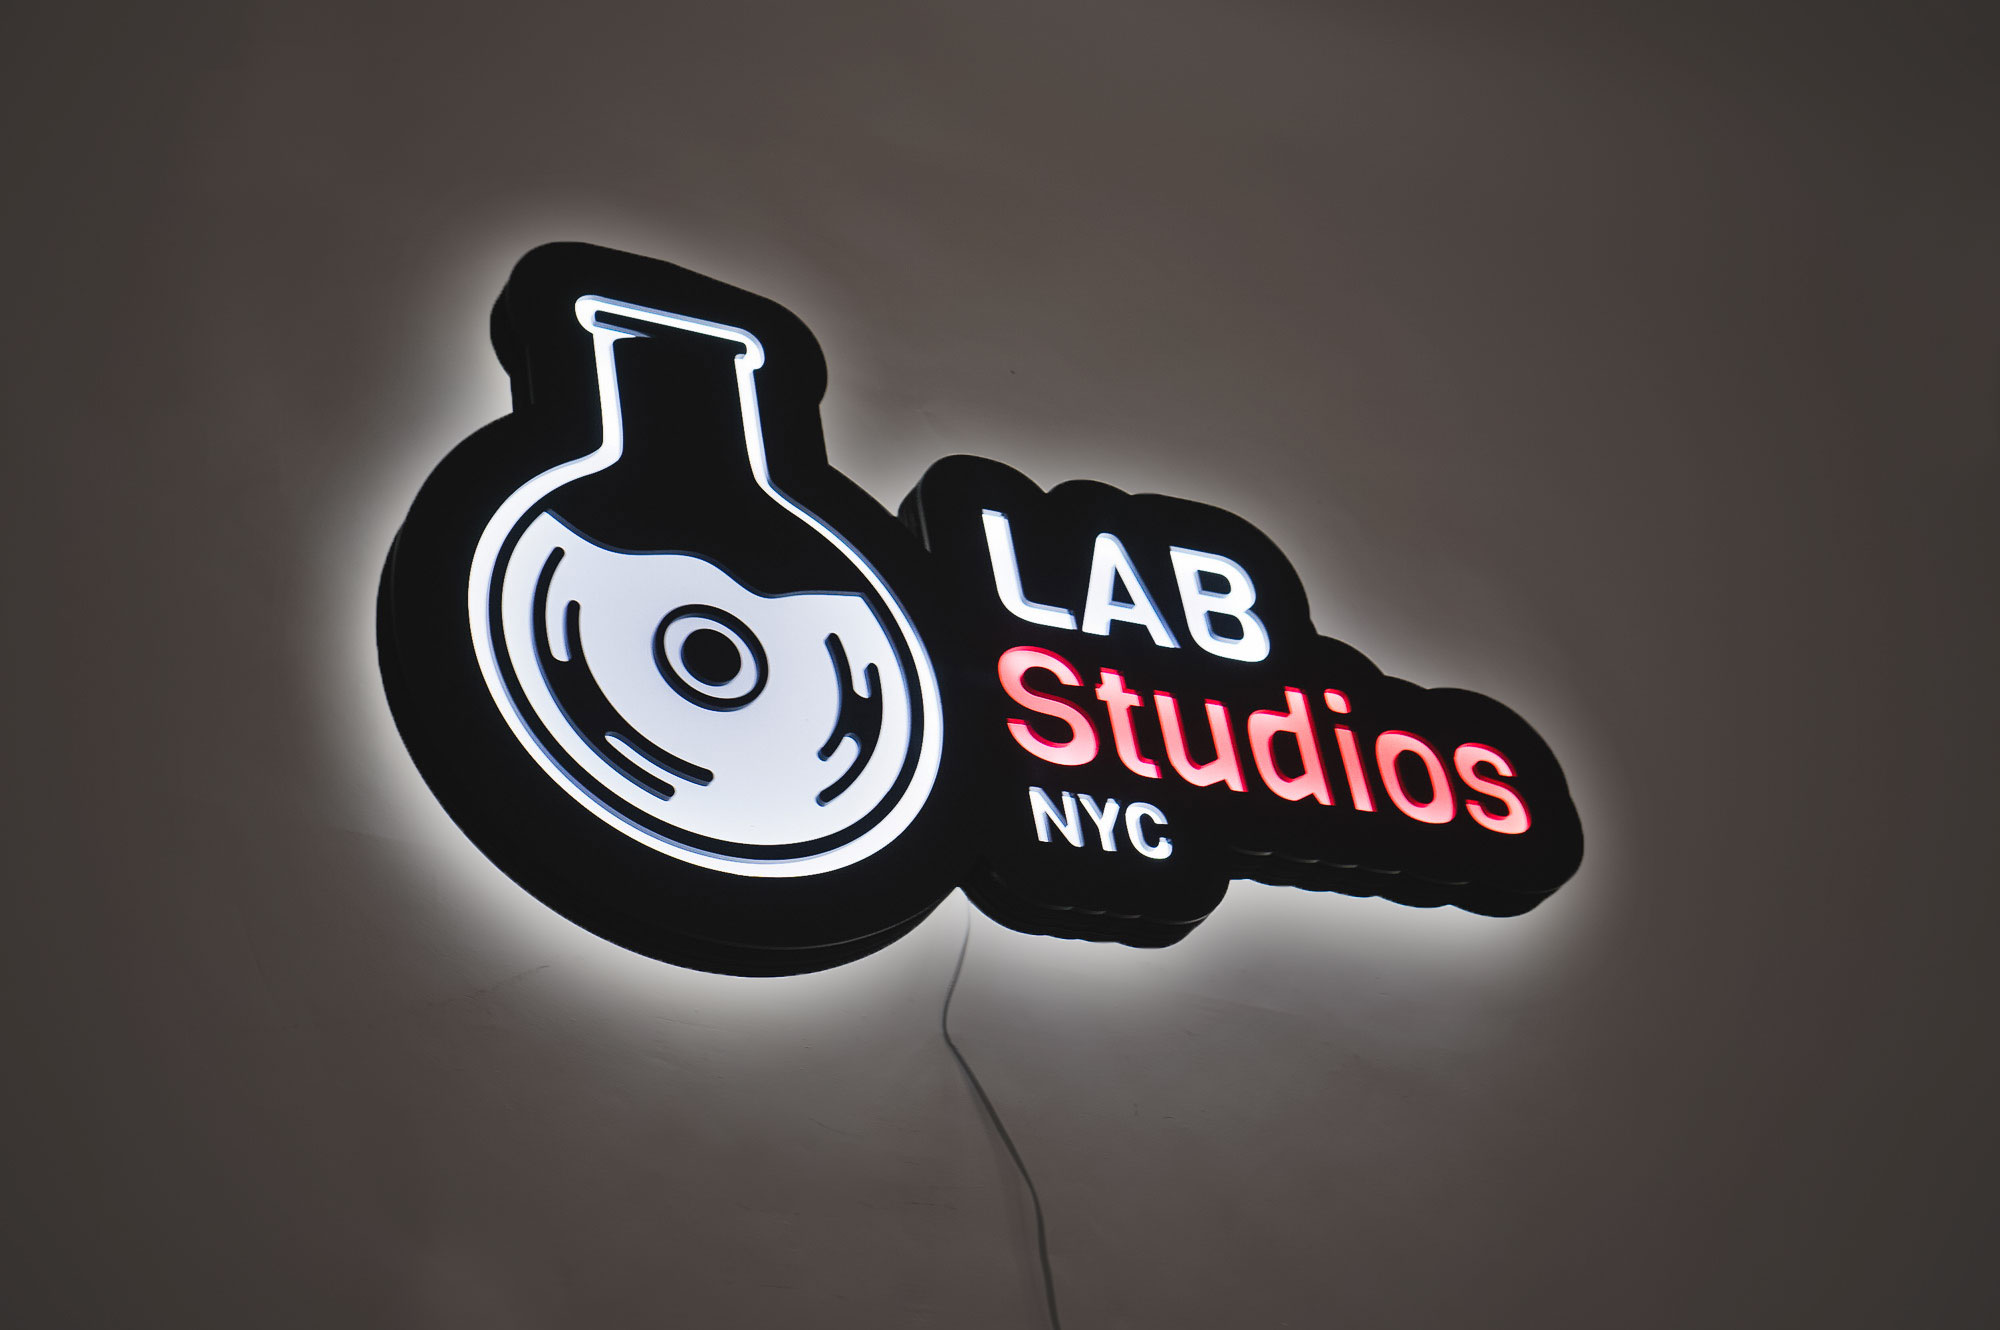 Illuminated pink, white, and black lightbox sign for Lab Studios, a recording studio in New York City.